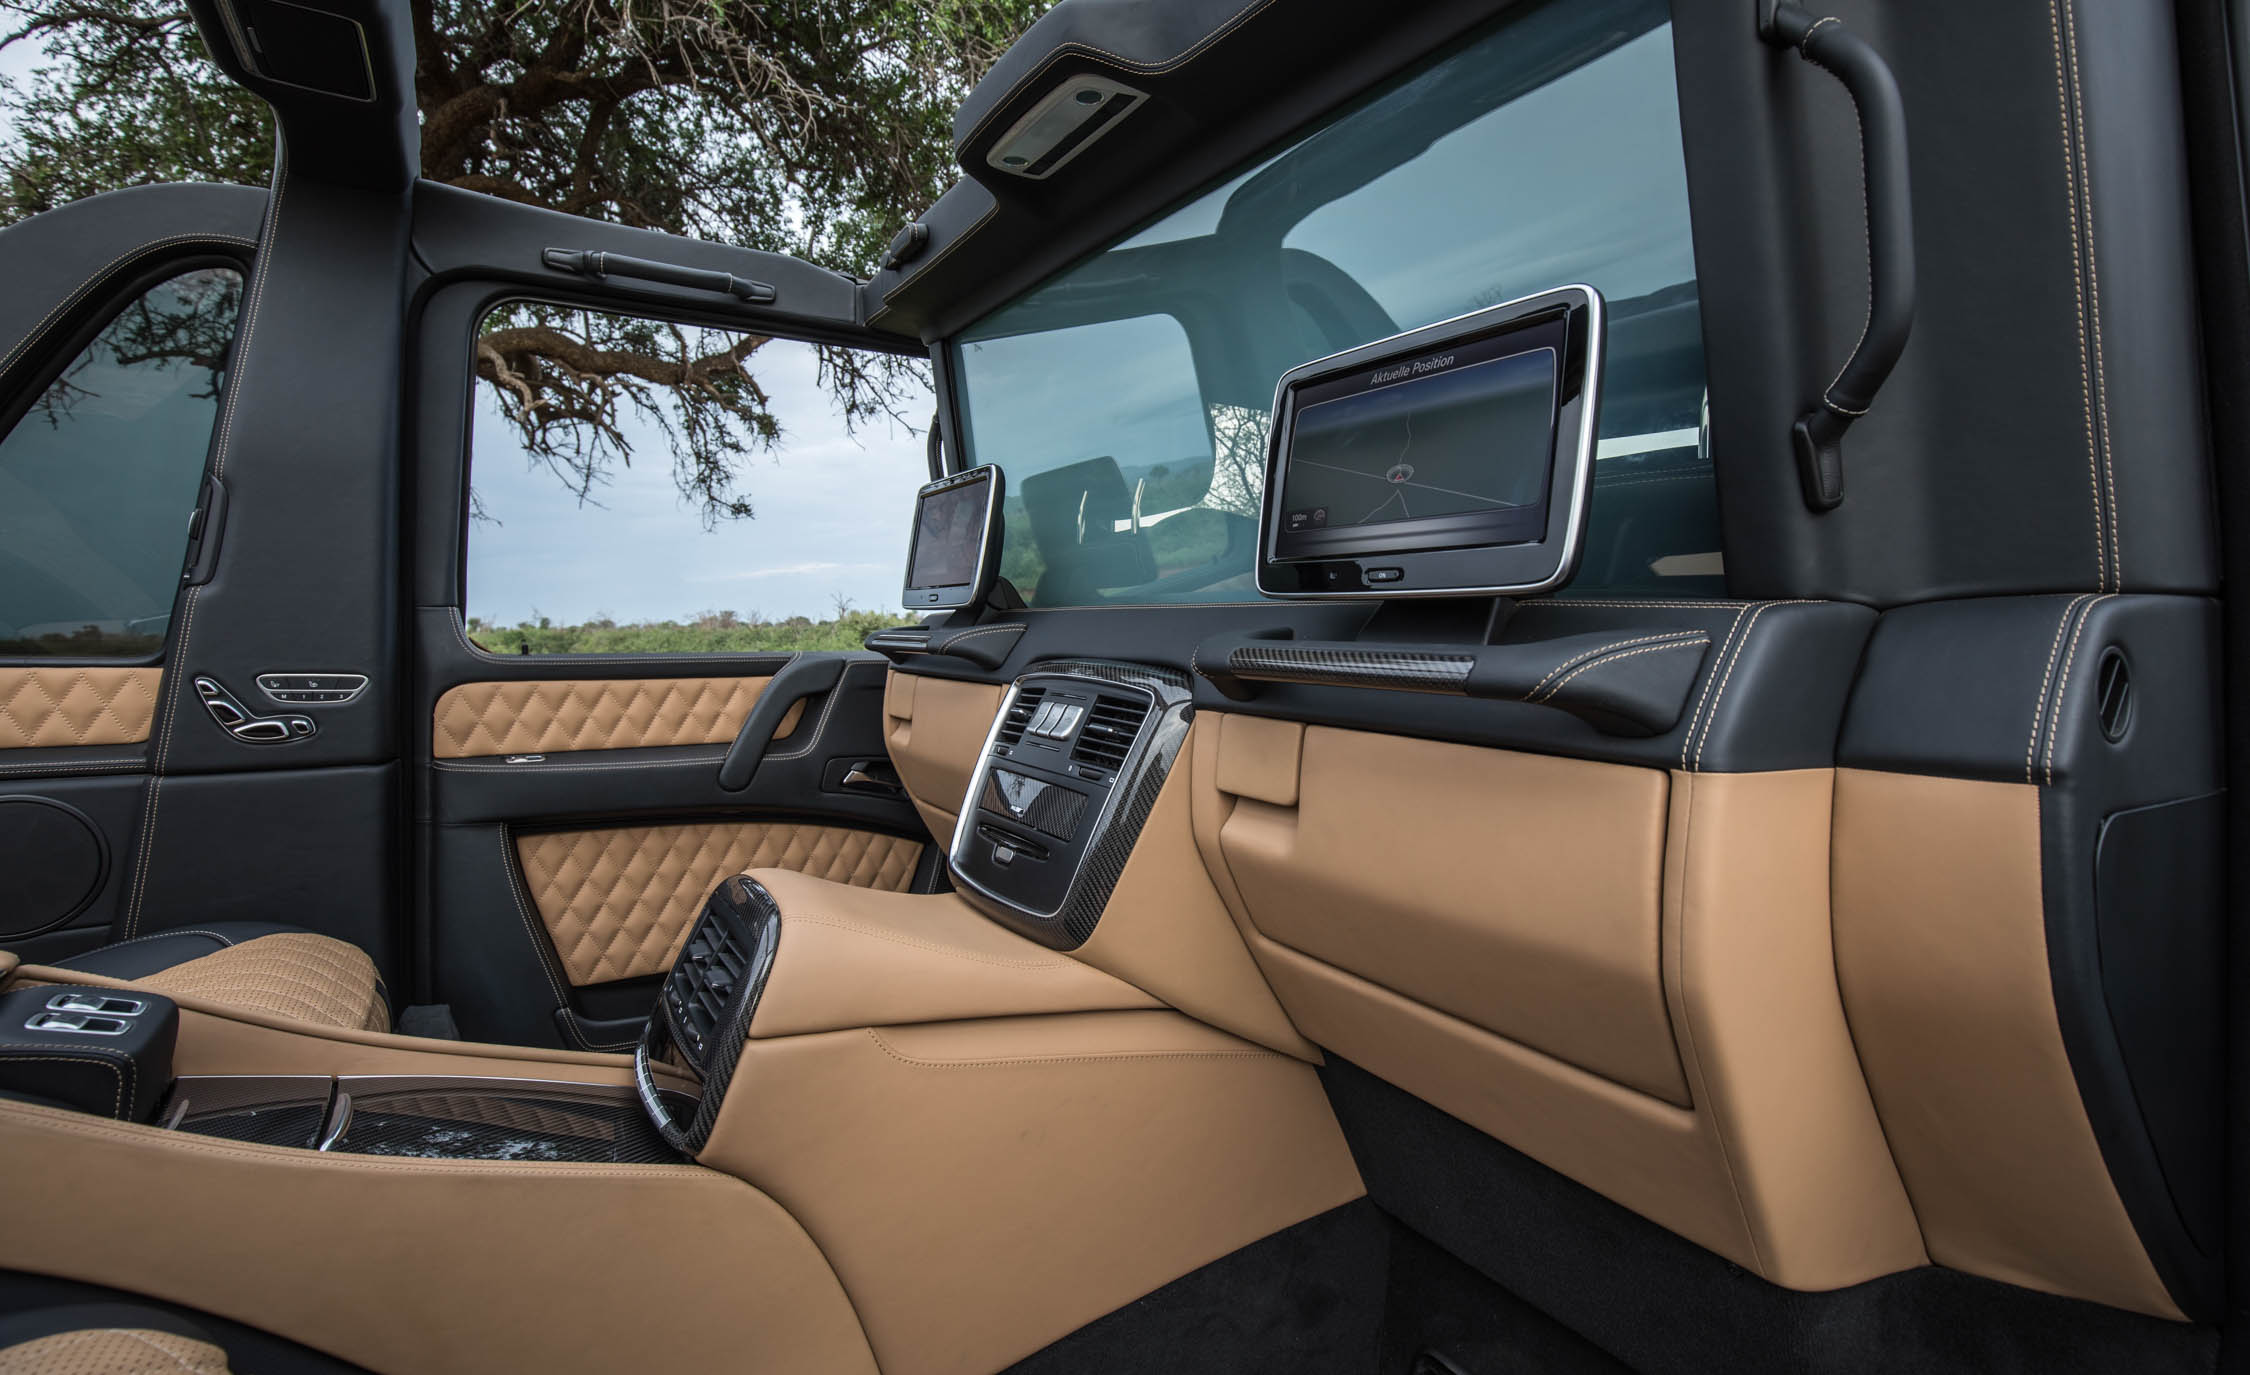 2018 Mercedes Maybach G650 Landaulet Interior Rear Dashboard And Headunit Multimedia Screen (Photo 20 of 52)